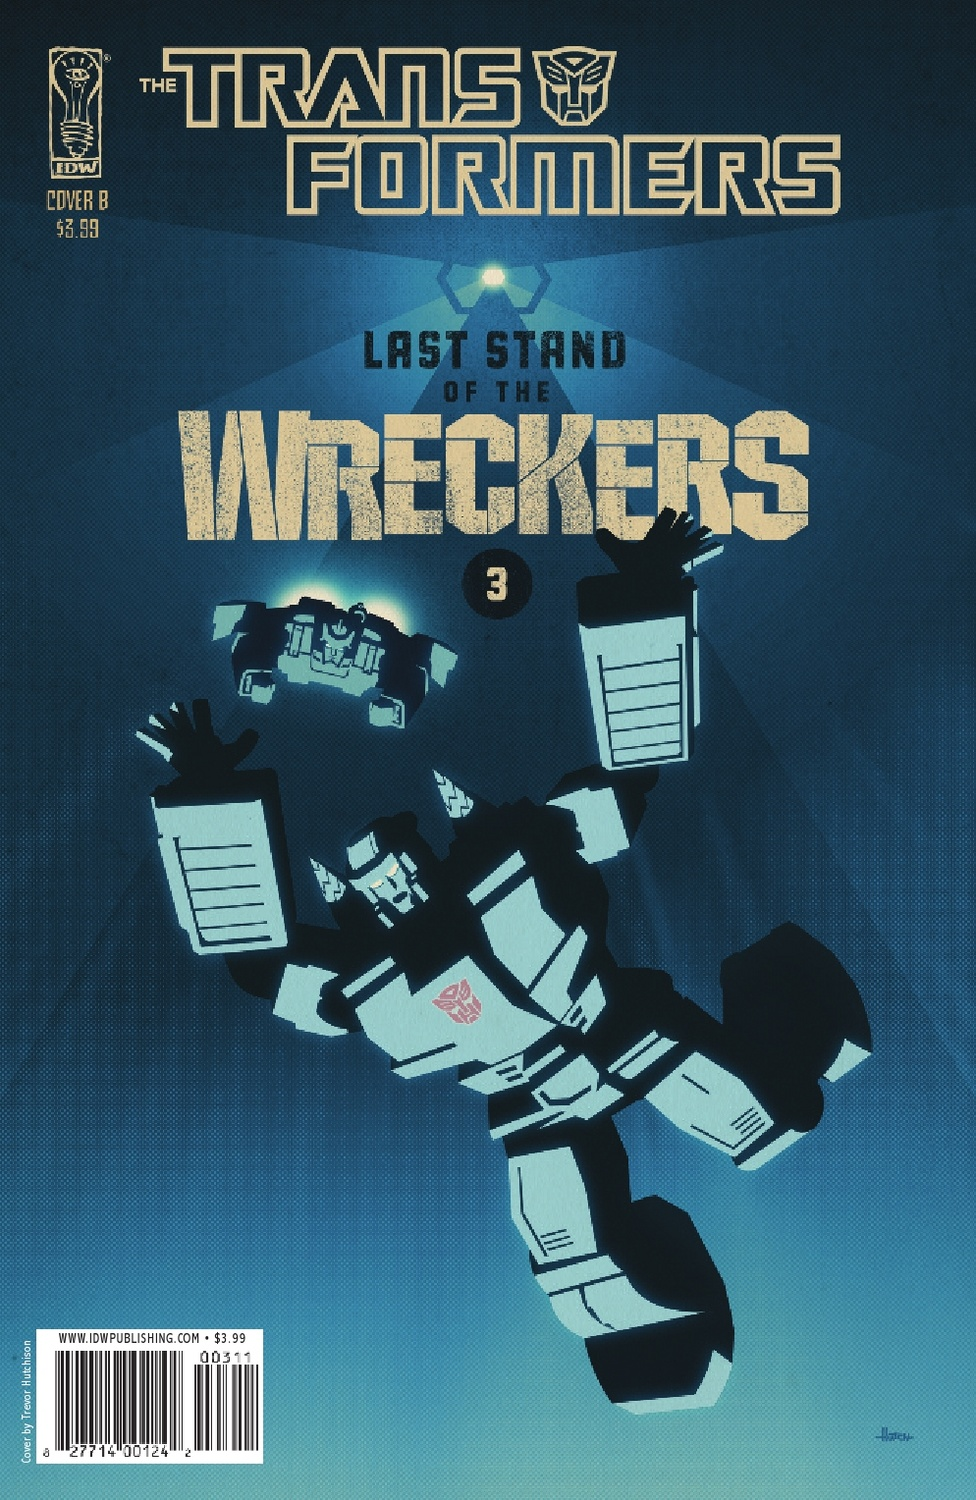 Last Stand of the Wreckers #3 Image